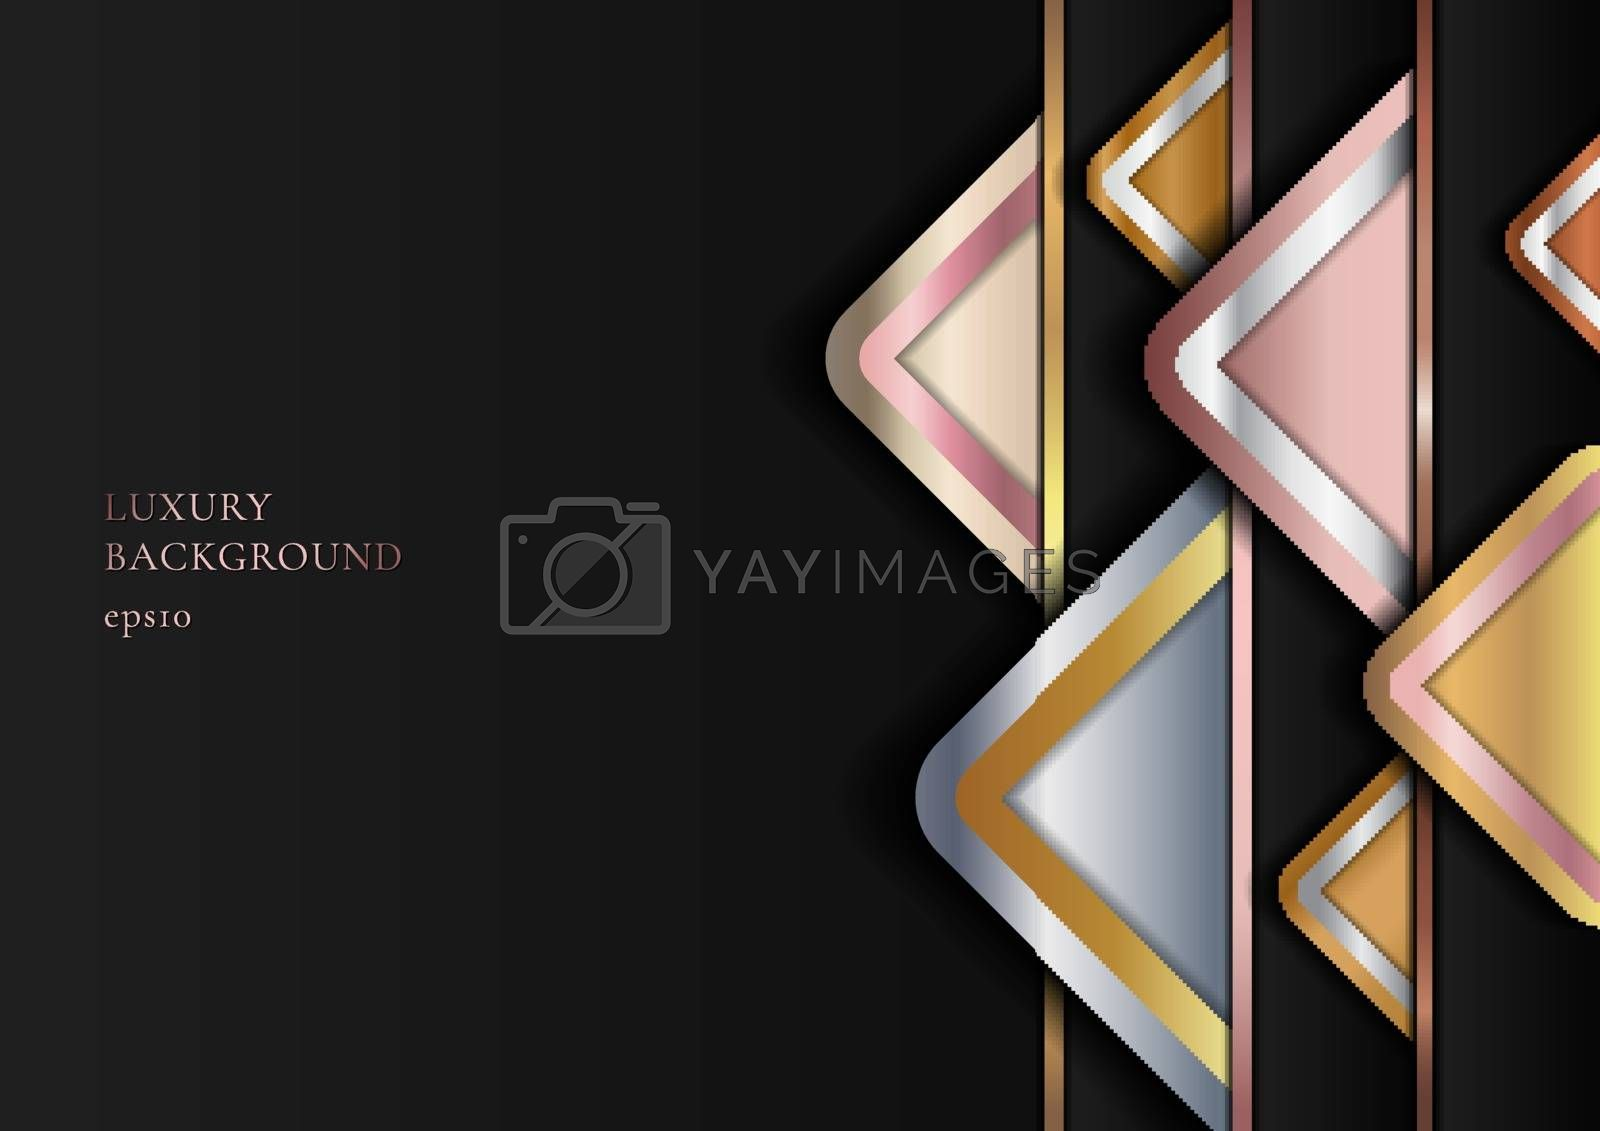 Abstract Modern Luxury Style Geometric Golden, Pink Gold, Silver Metallic on Black Background. Vector Illustration